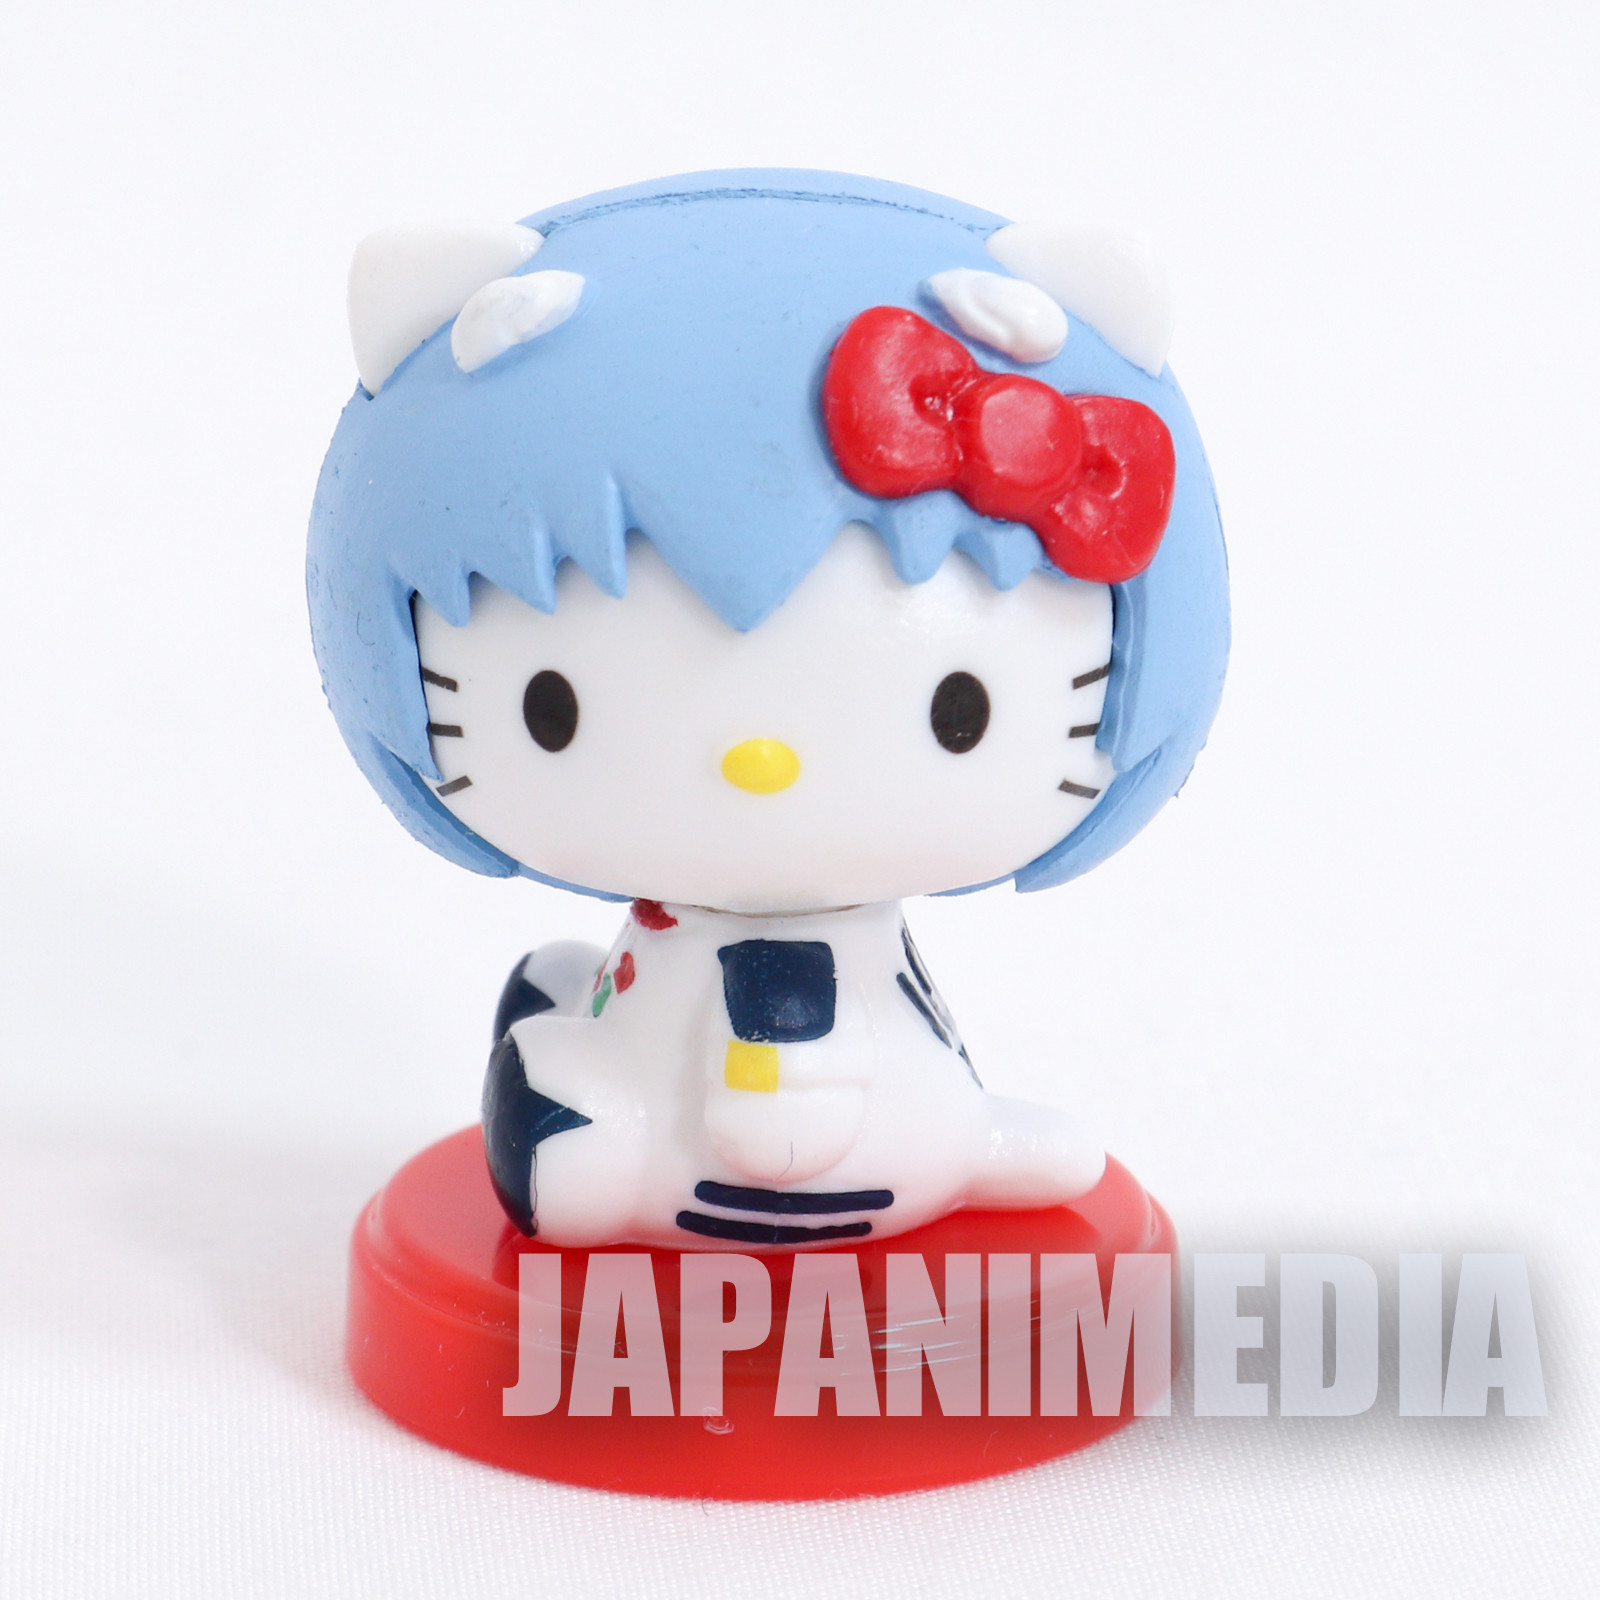 "Evangelion Hello Kitty Rei Ayanami 1.25"" Mini Figure Sanrio JAPAN ANIME MANGA"